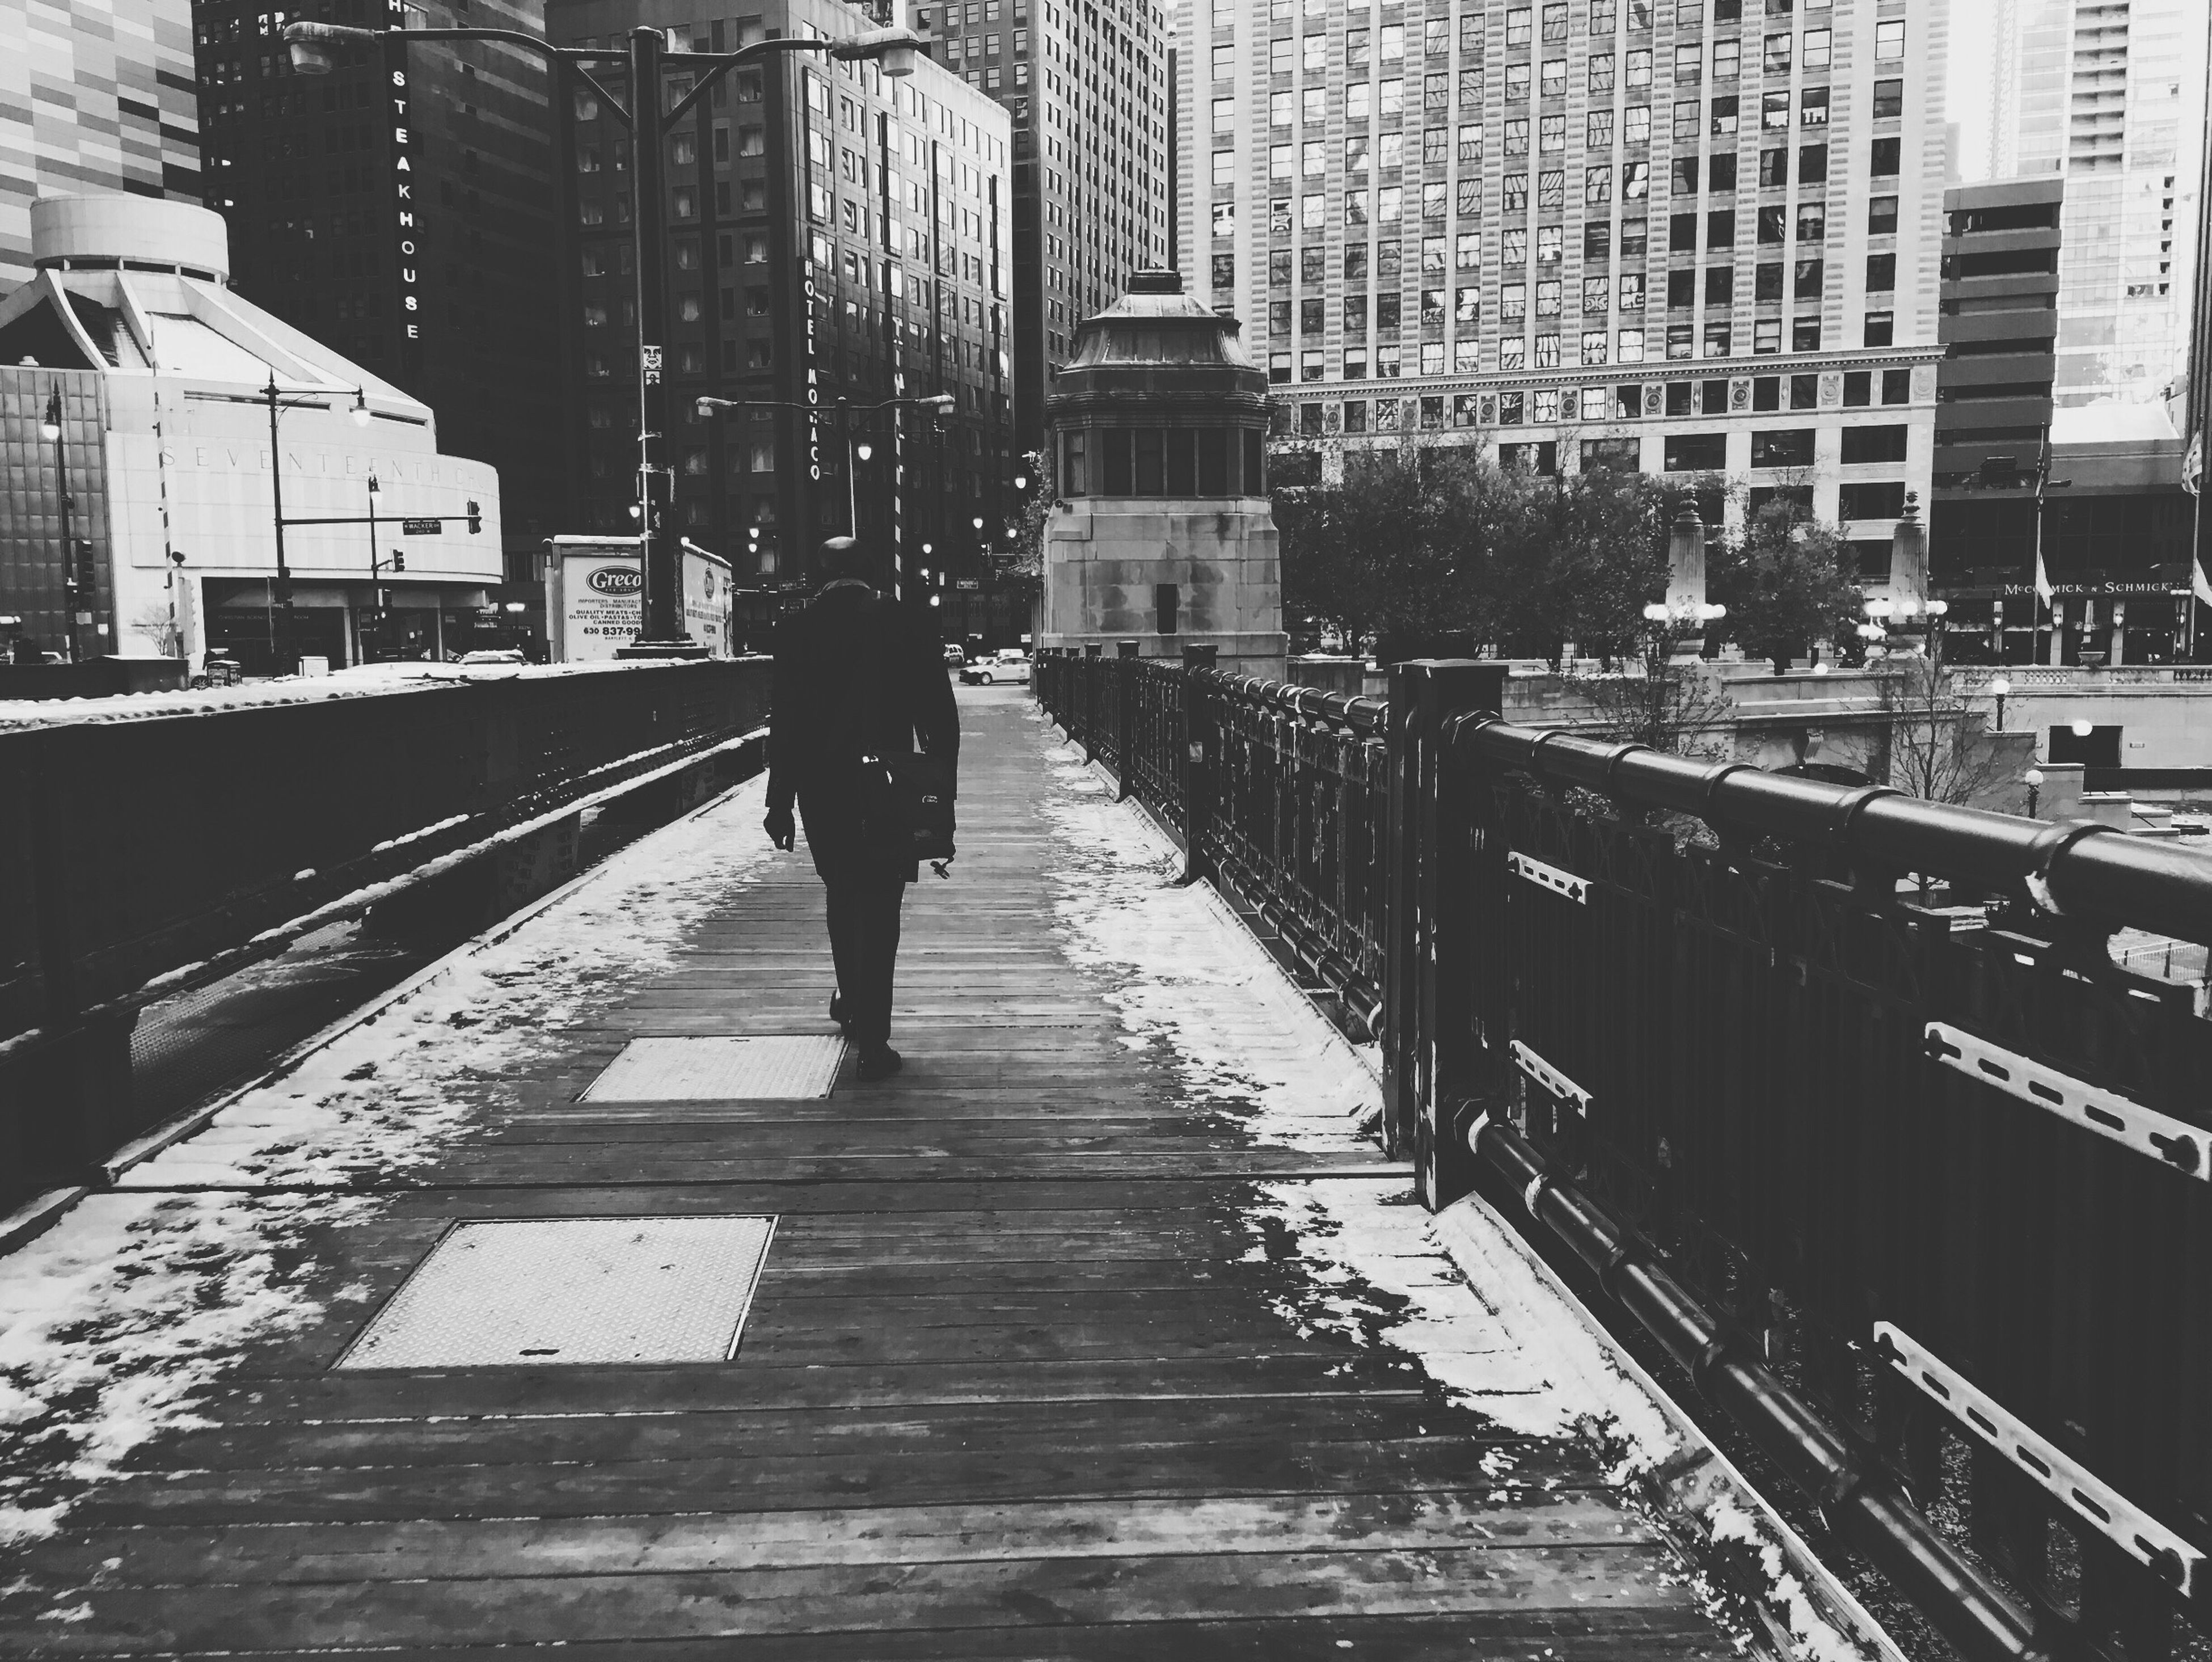 building exterior, architecture, built structure, city, walking, full length, lifestyles, men, the way forward, rear view, city life, railroad track, person, transportation, leisure activity, railing, building, street